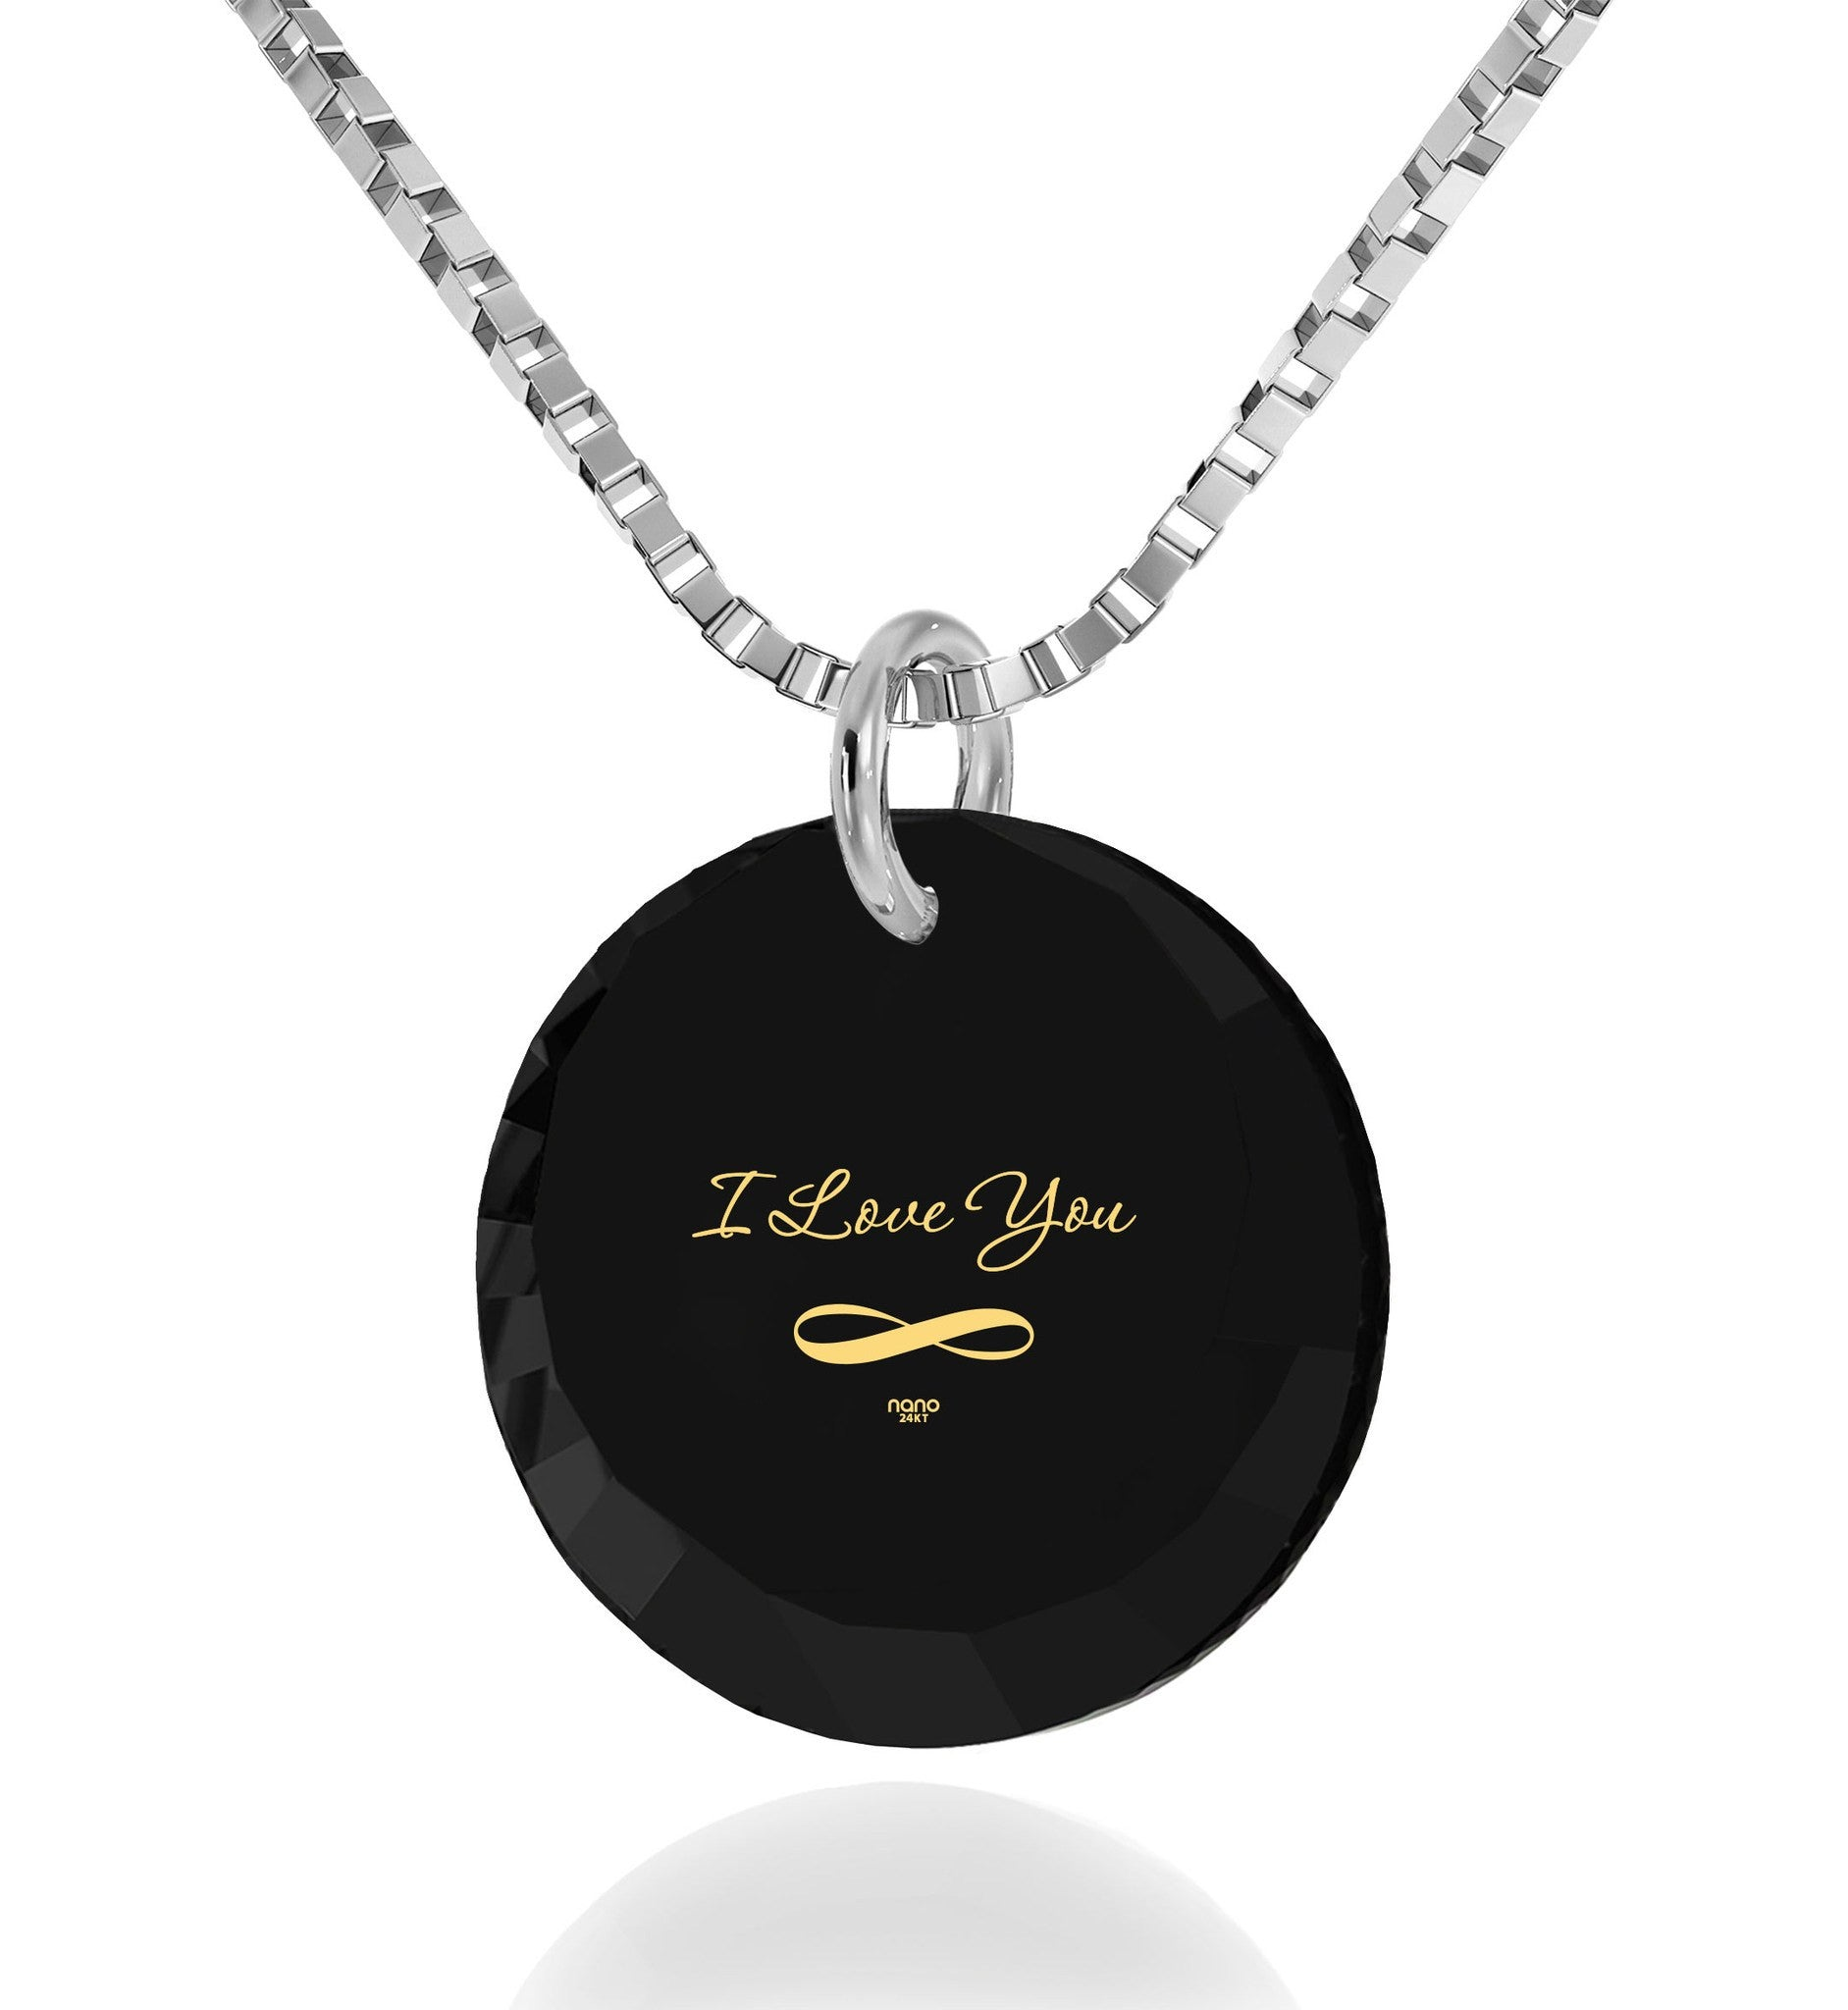 "Great Gifts for Wife, ""I Love You Infinity"" 24k Imprint, Romantic Birthday Ideas for Girlfriend, Nano Jewelry"